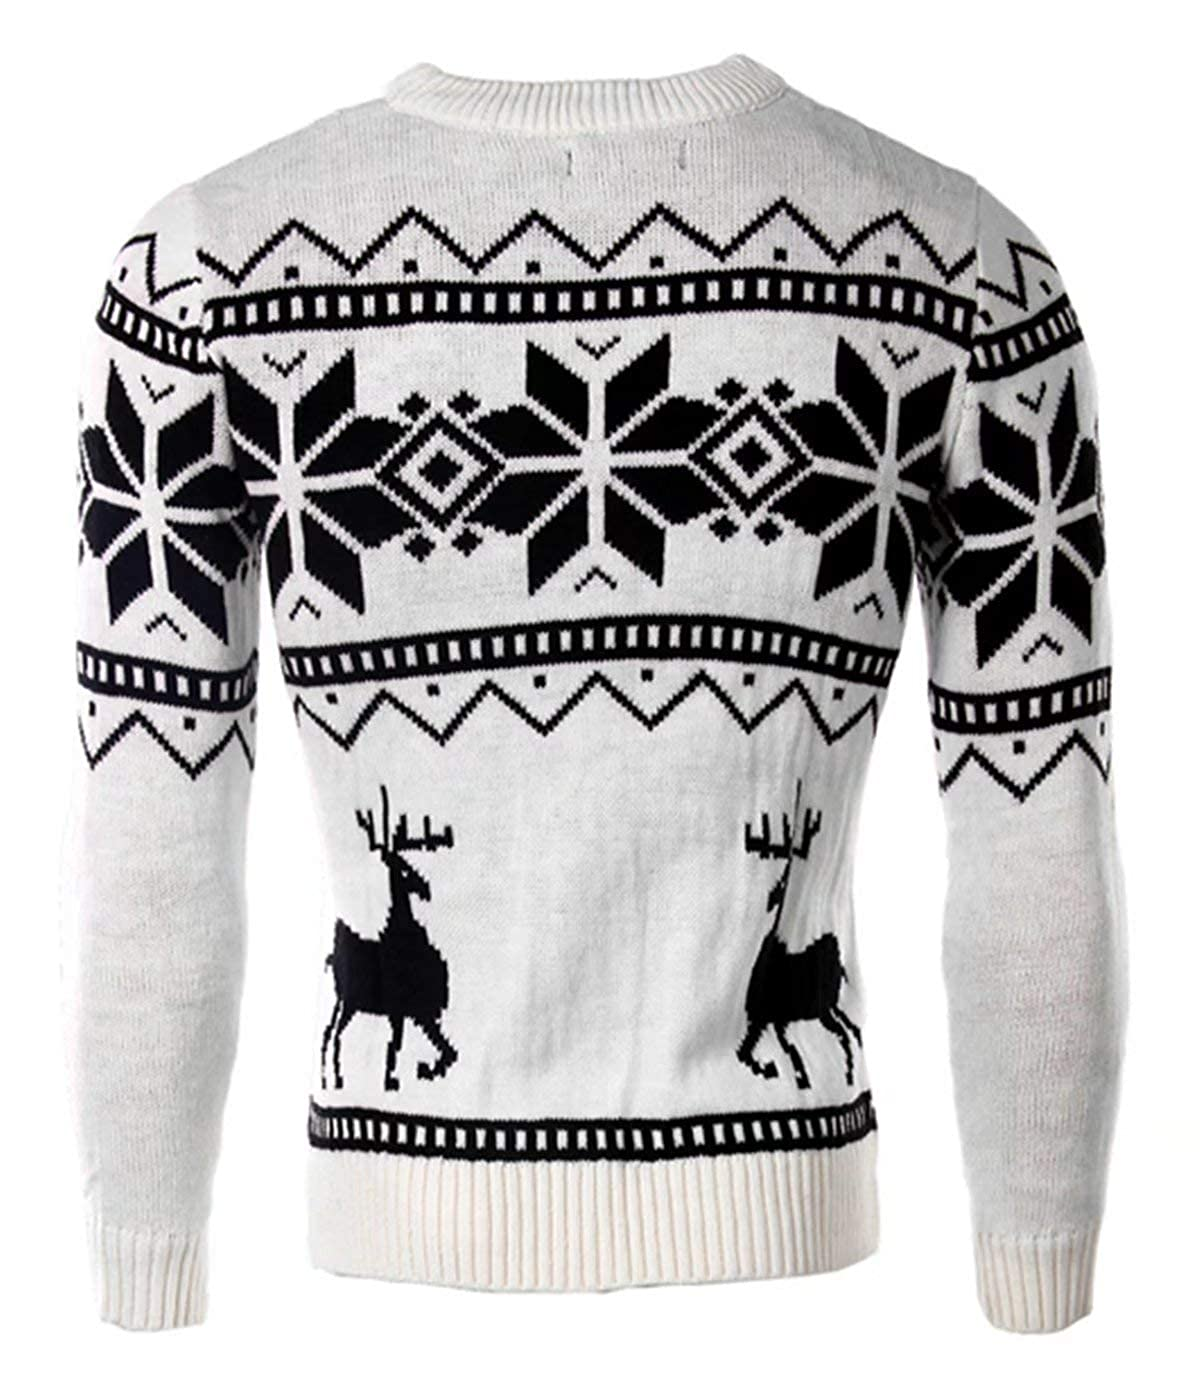 EMAOR Mens Fashion Reindeer and Snowflake Crew Neck Knit Sweater